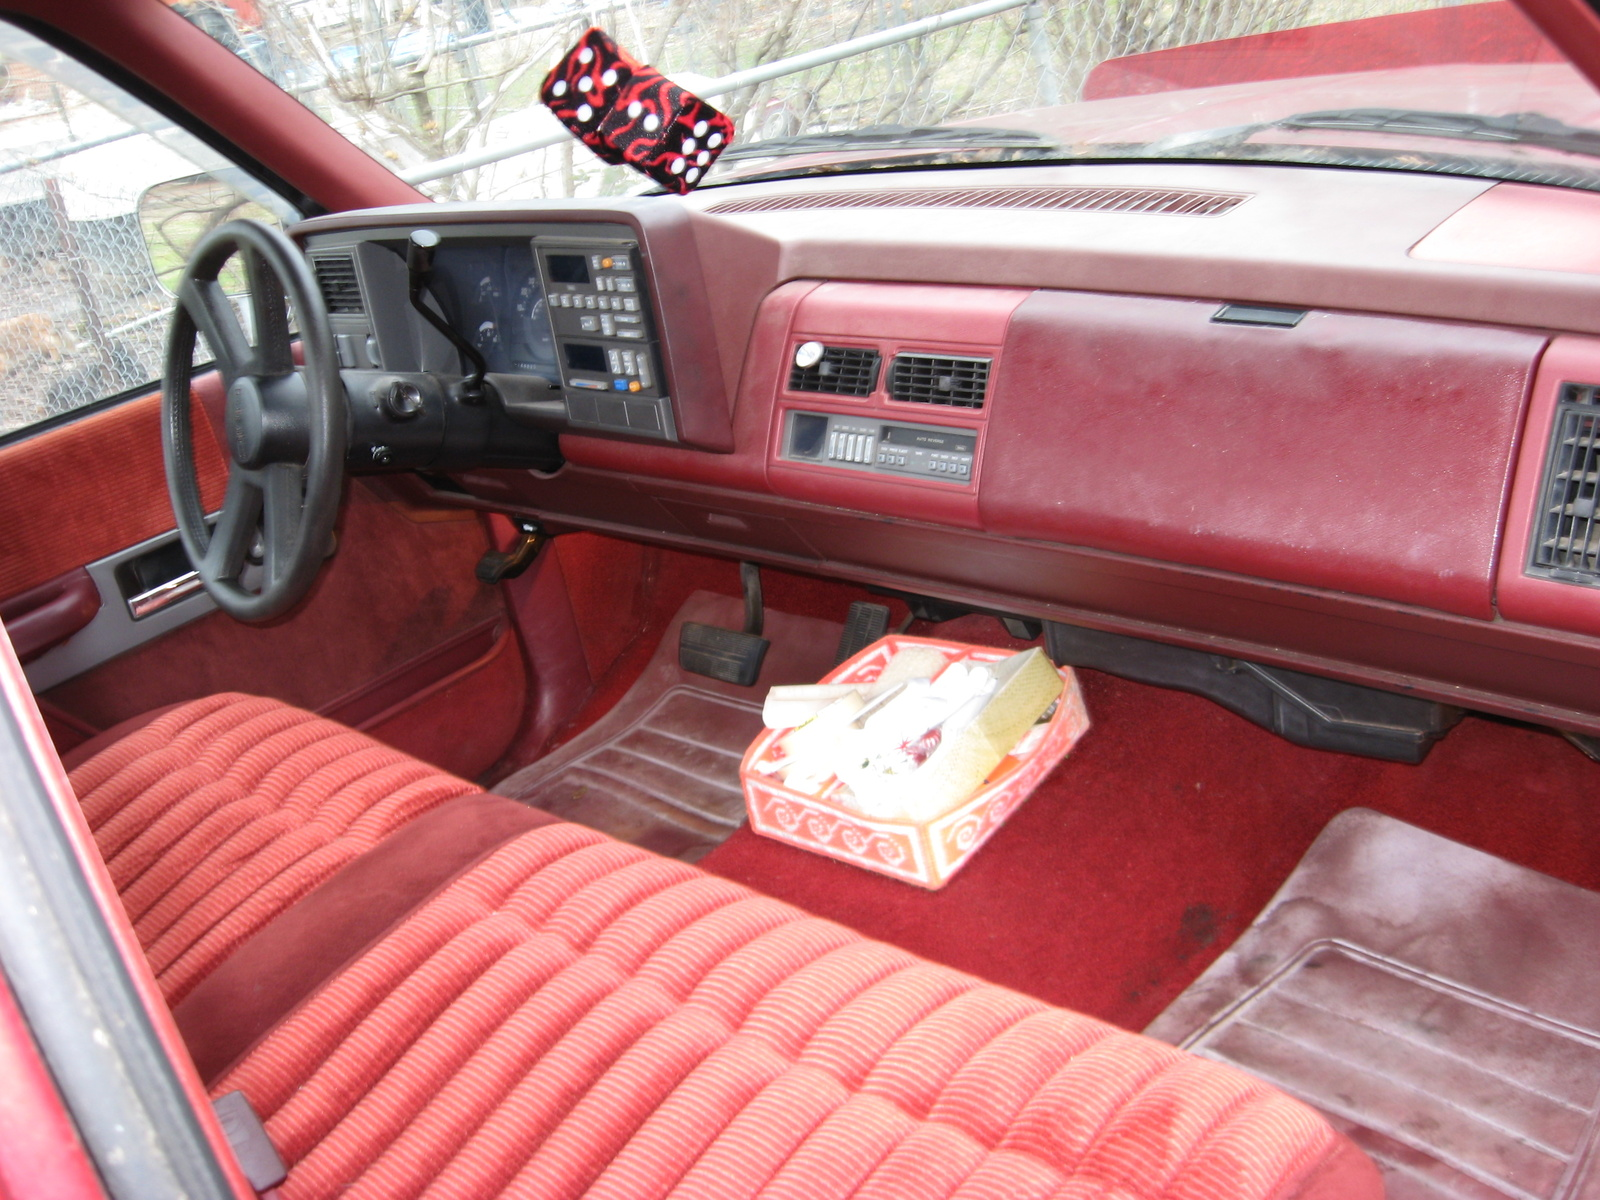 1991 Gmc Sierra 2500 Photos Informations Articles 1988 Chevrolet K2500 Wiring Diagram 6